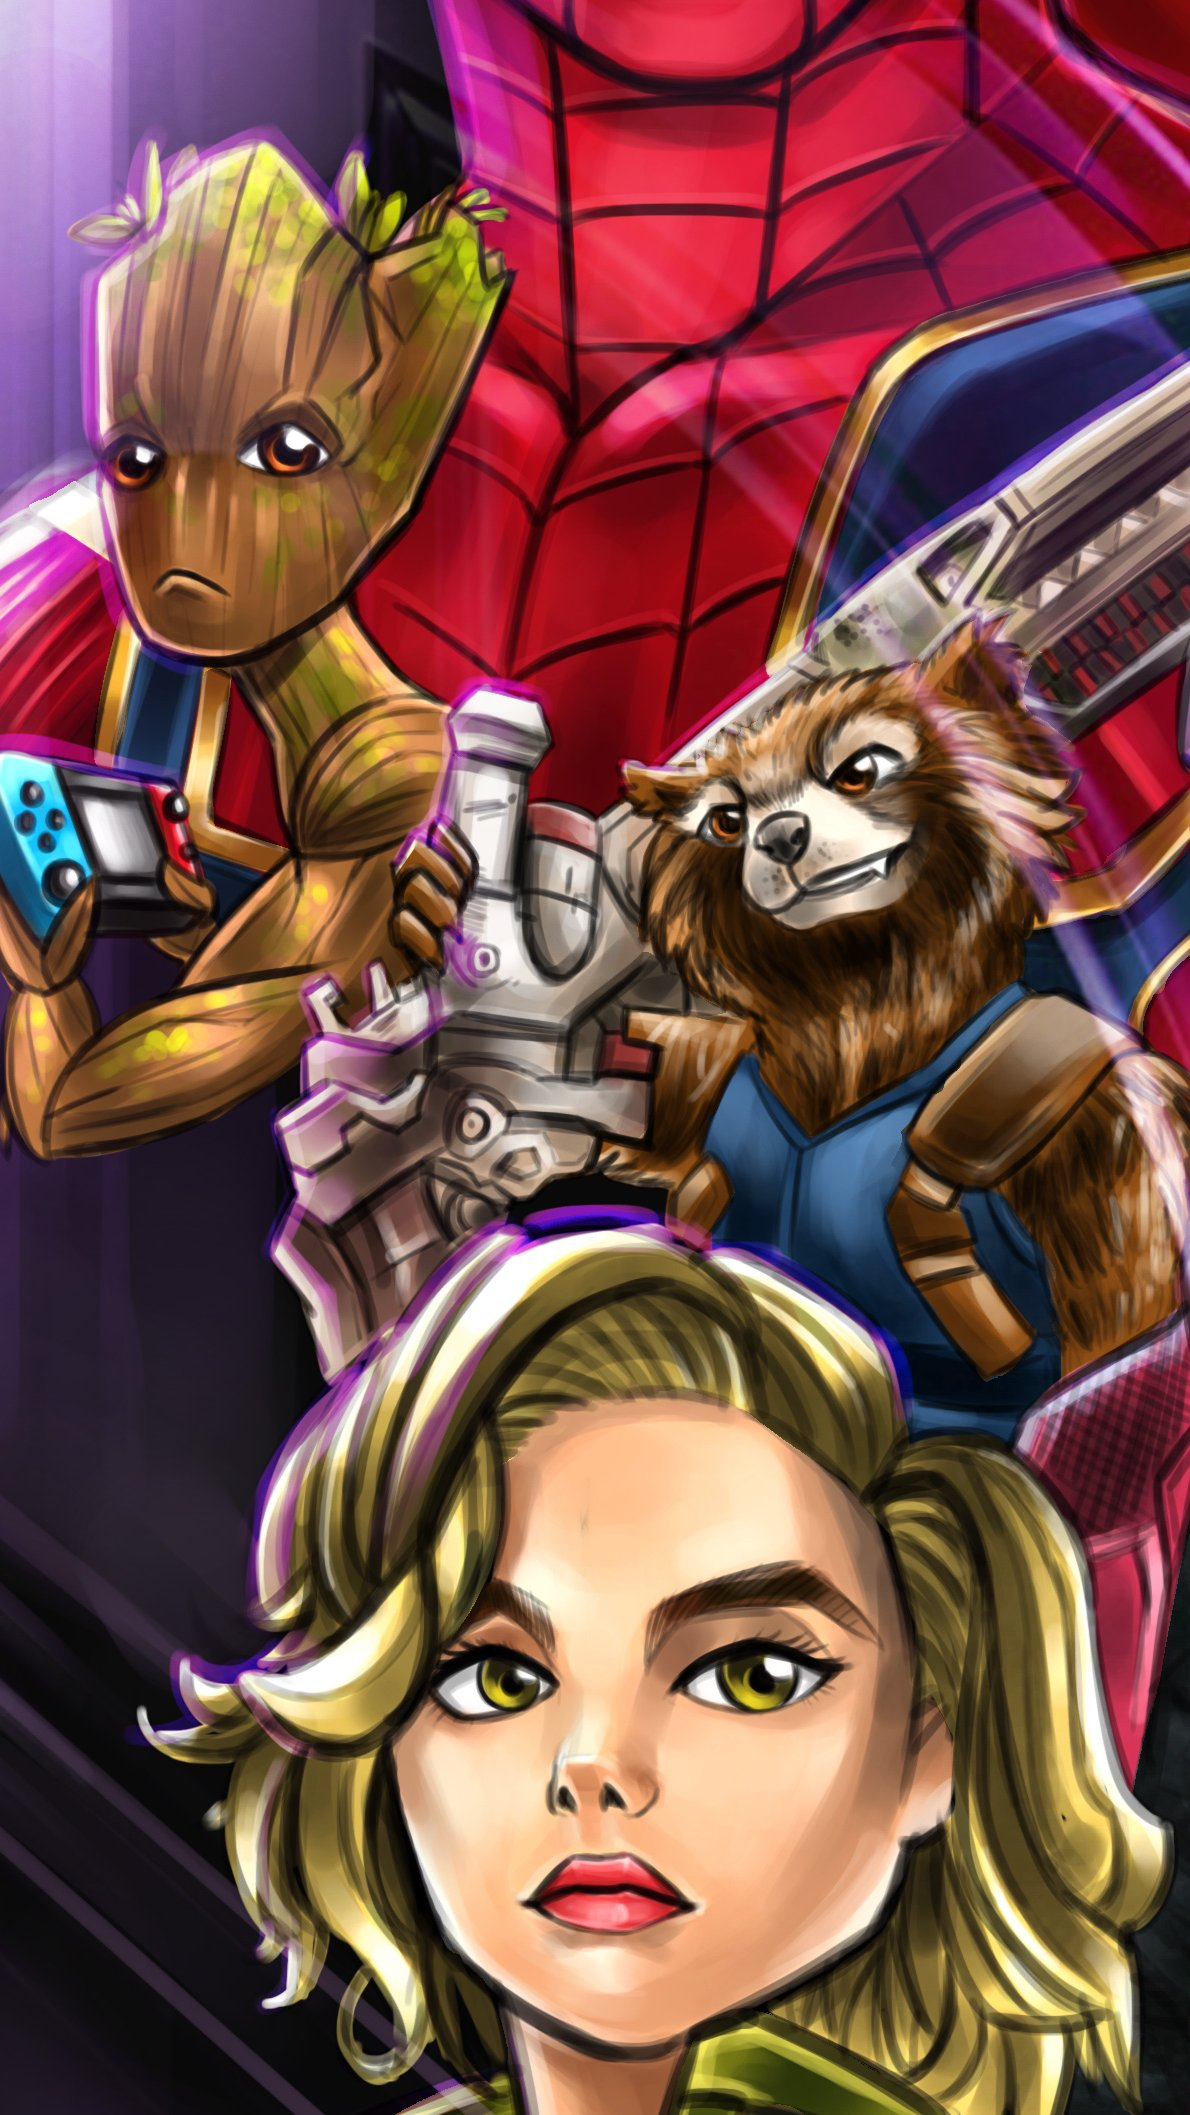 Wallpaper Artwork of characters of Guardians of the Galaxy in Avengers Vertical